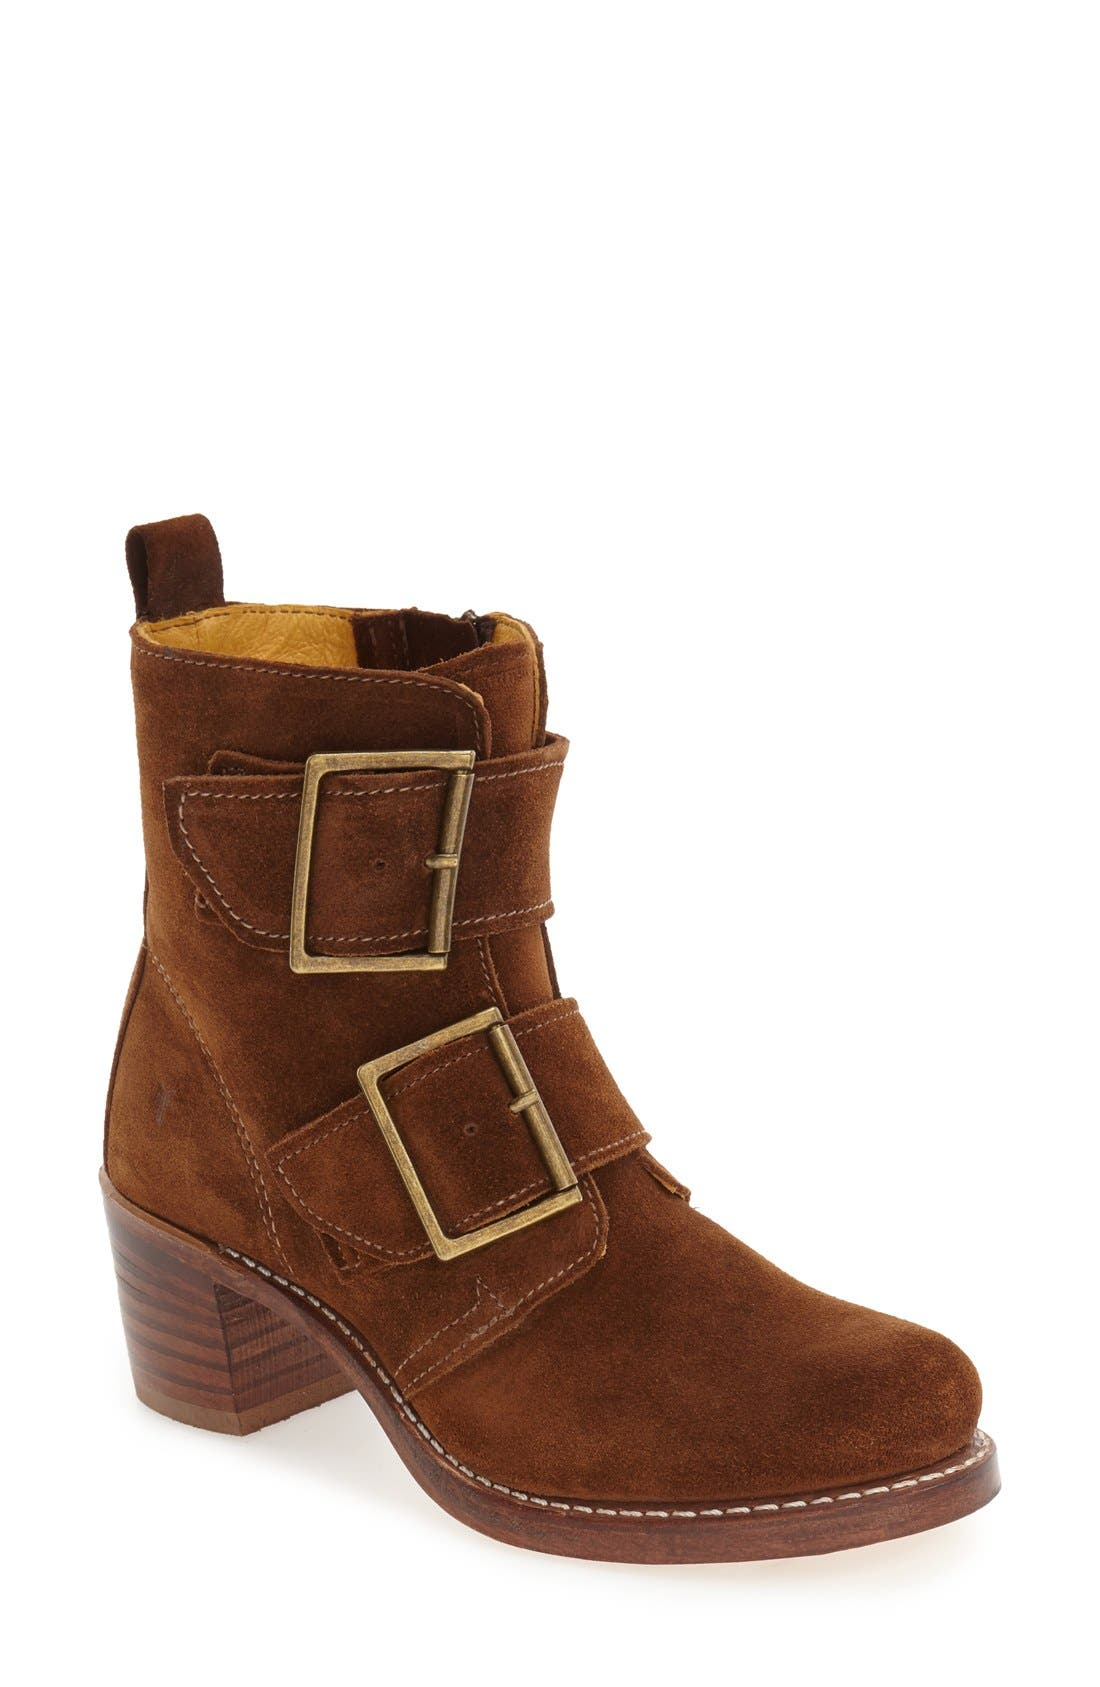 'Sabrina' Double Buckle Boot,                             Main thumbnail 1, color,                             Wood Oiled Suede